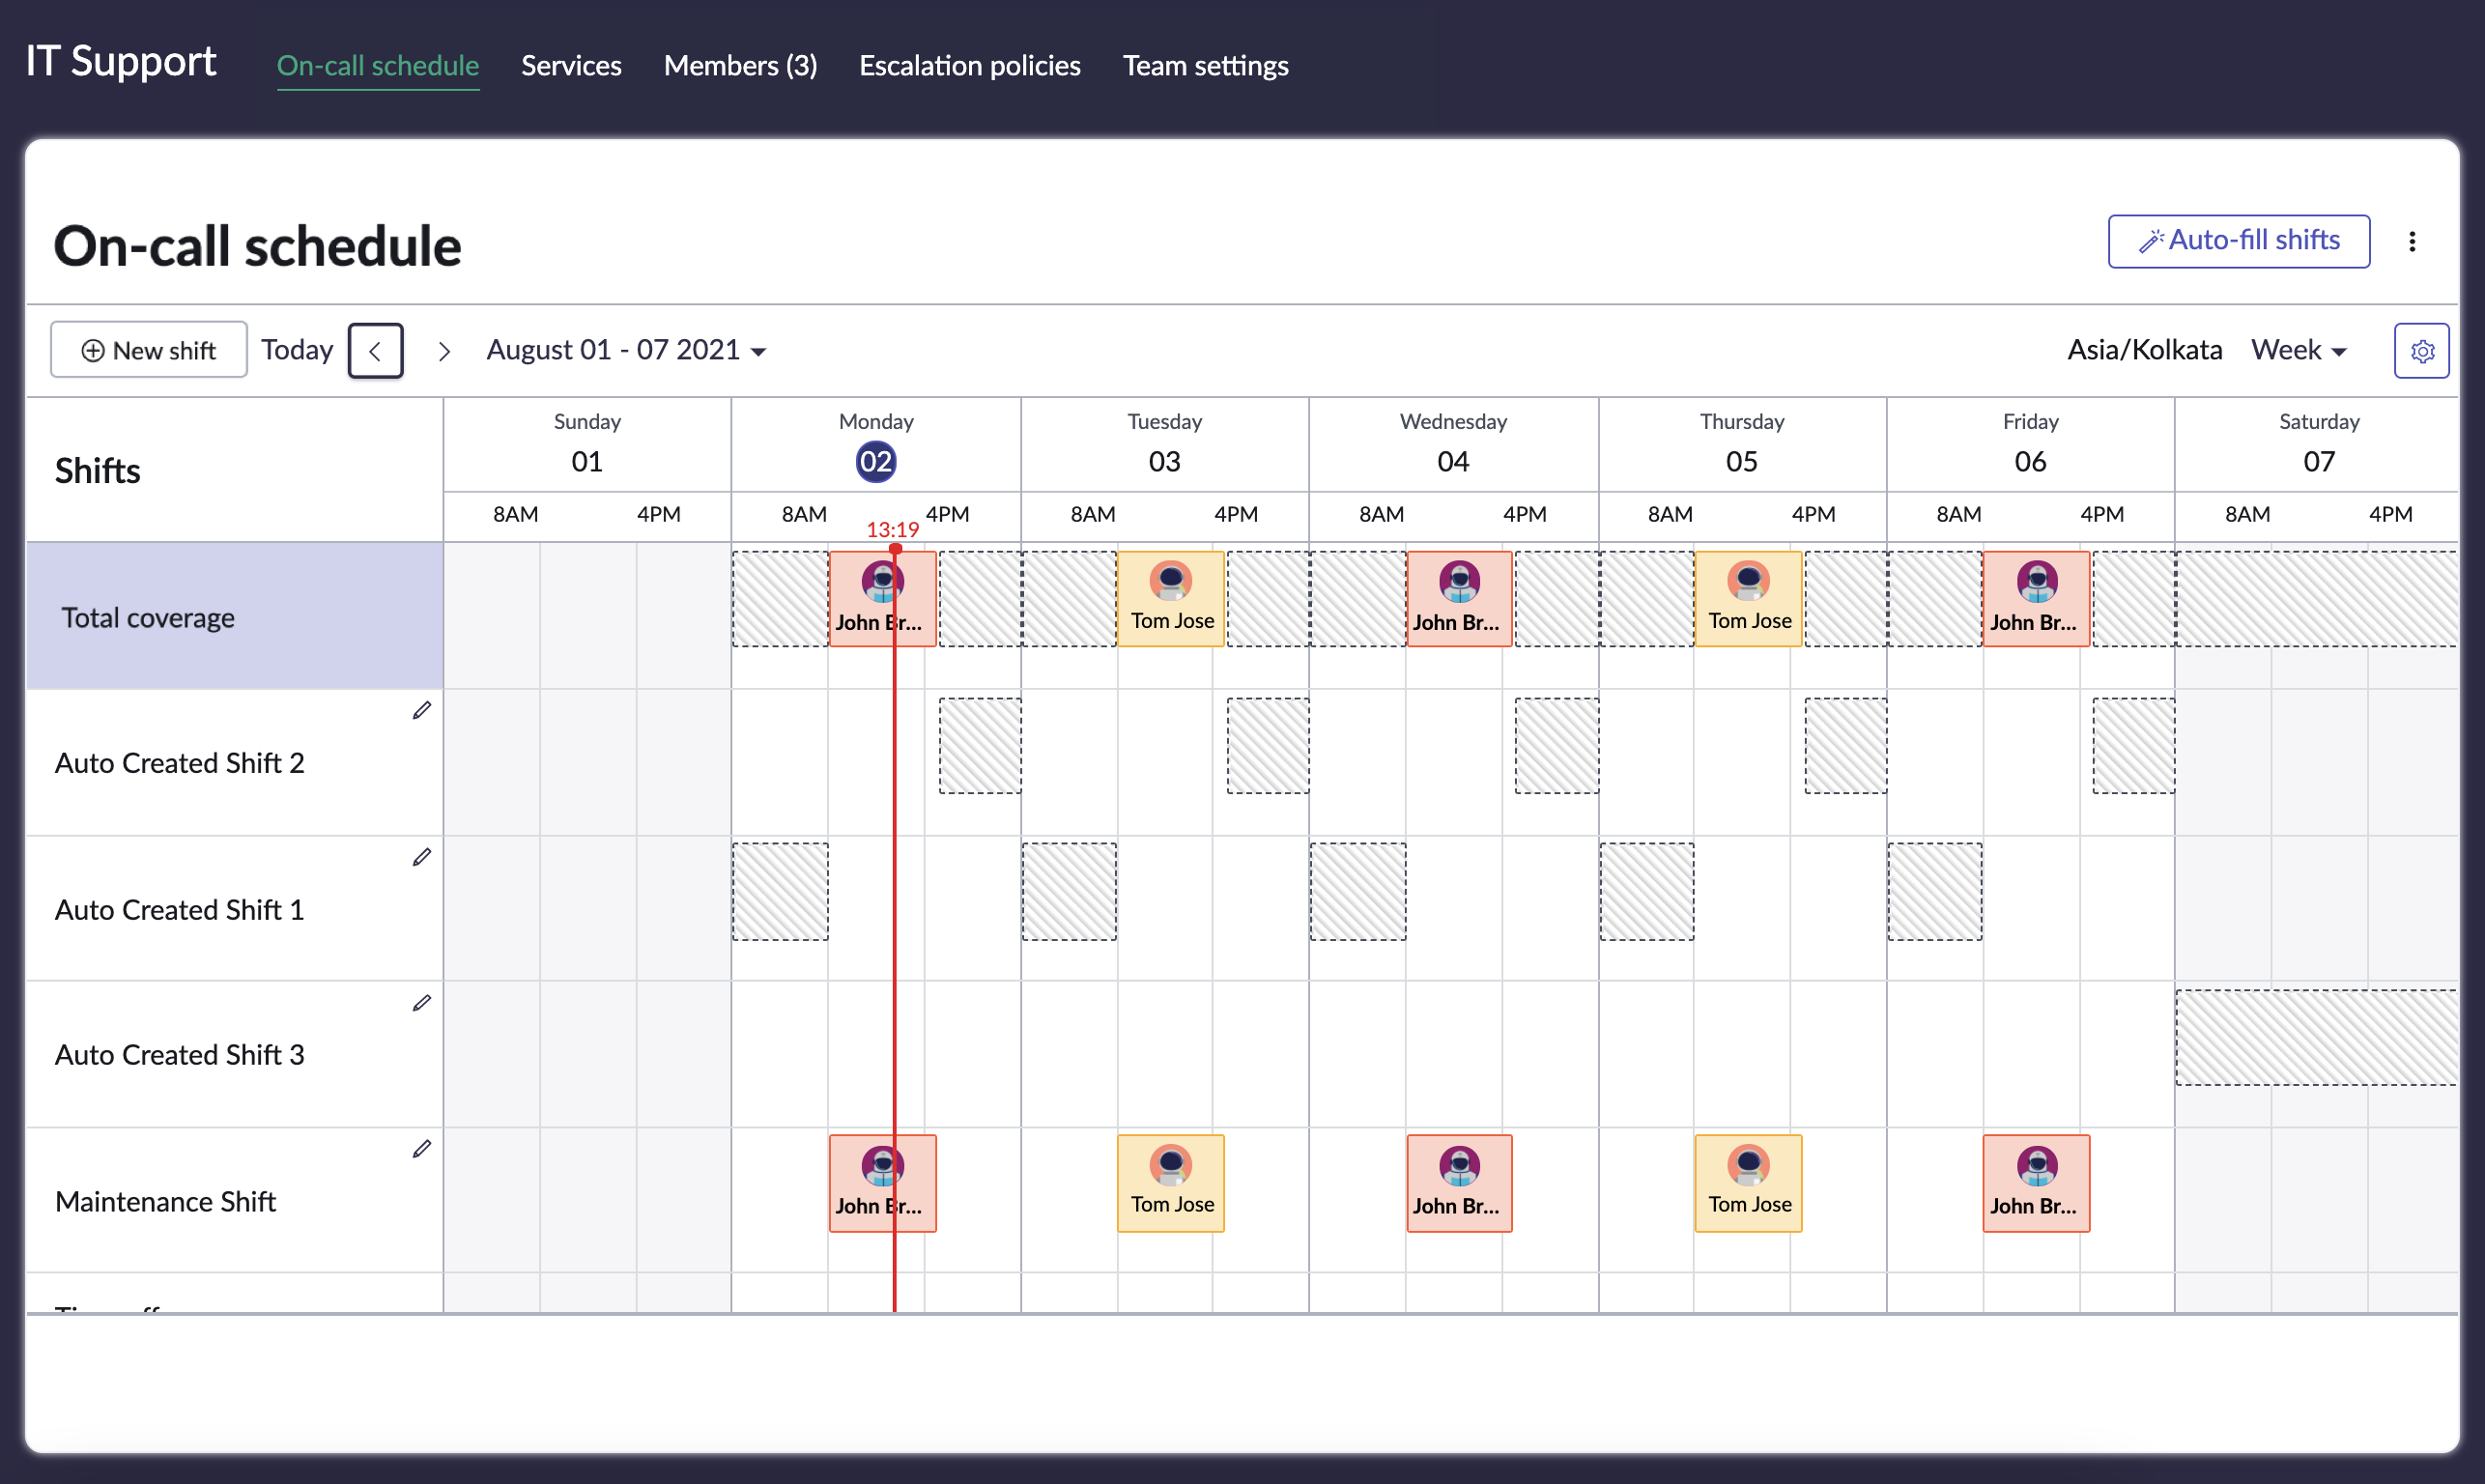 Shifts are automatically added wherever there is gap in your team shift coverage.